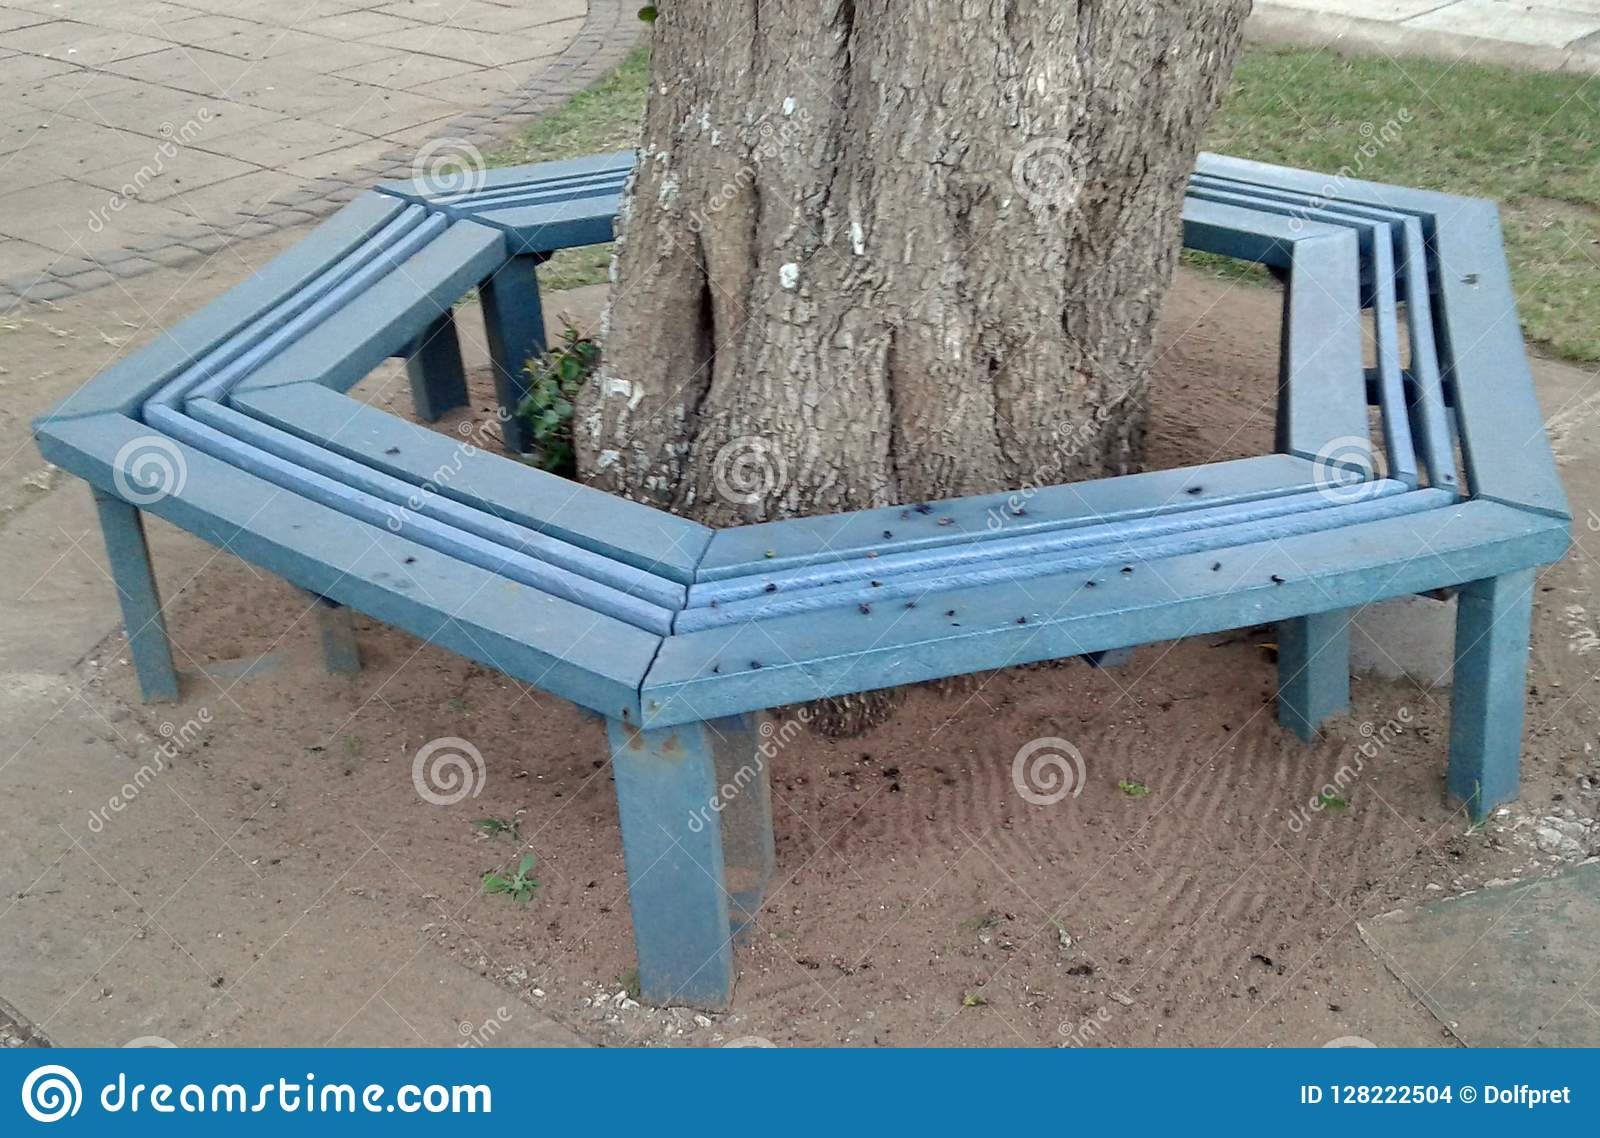 Picture of: Recycled Plastic Used To Manufacture New Park Bench Around Tree Stock Photo Image Of Lifestyle Idea 128222504